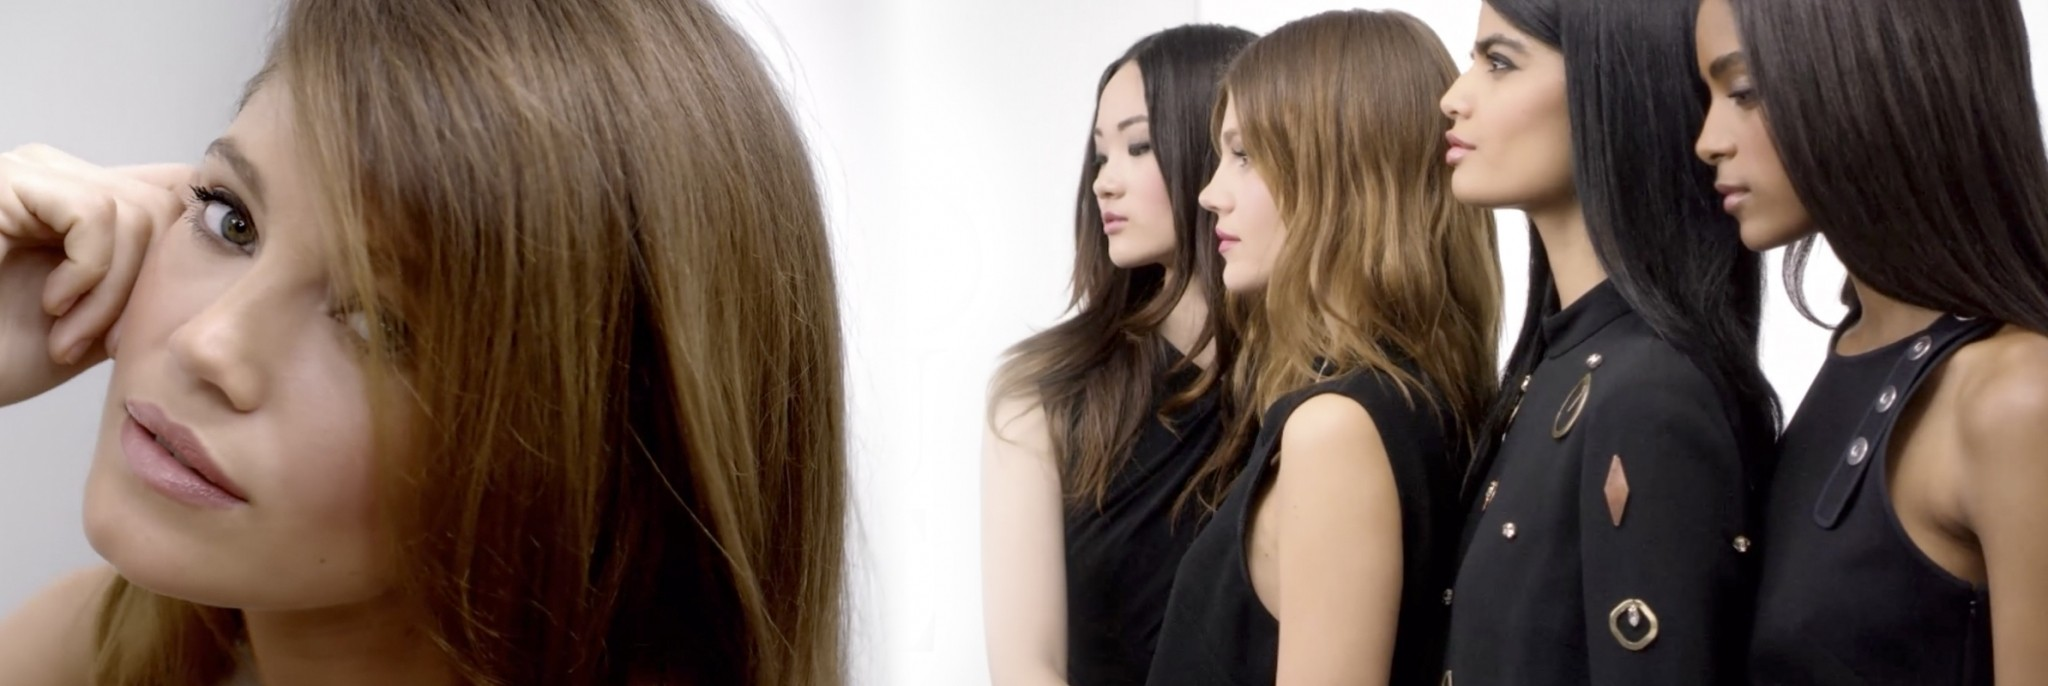 Bobbi Brown's New Campaign Has a Beautiful Message – Watch It Here